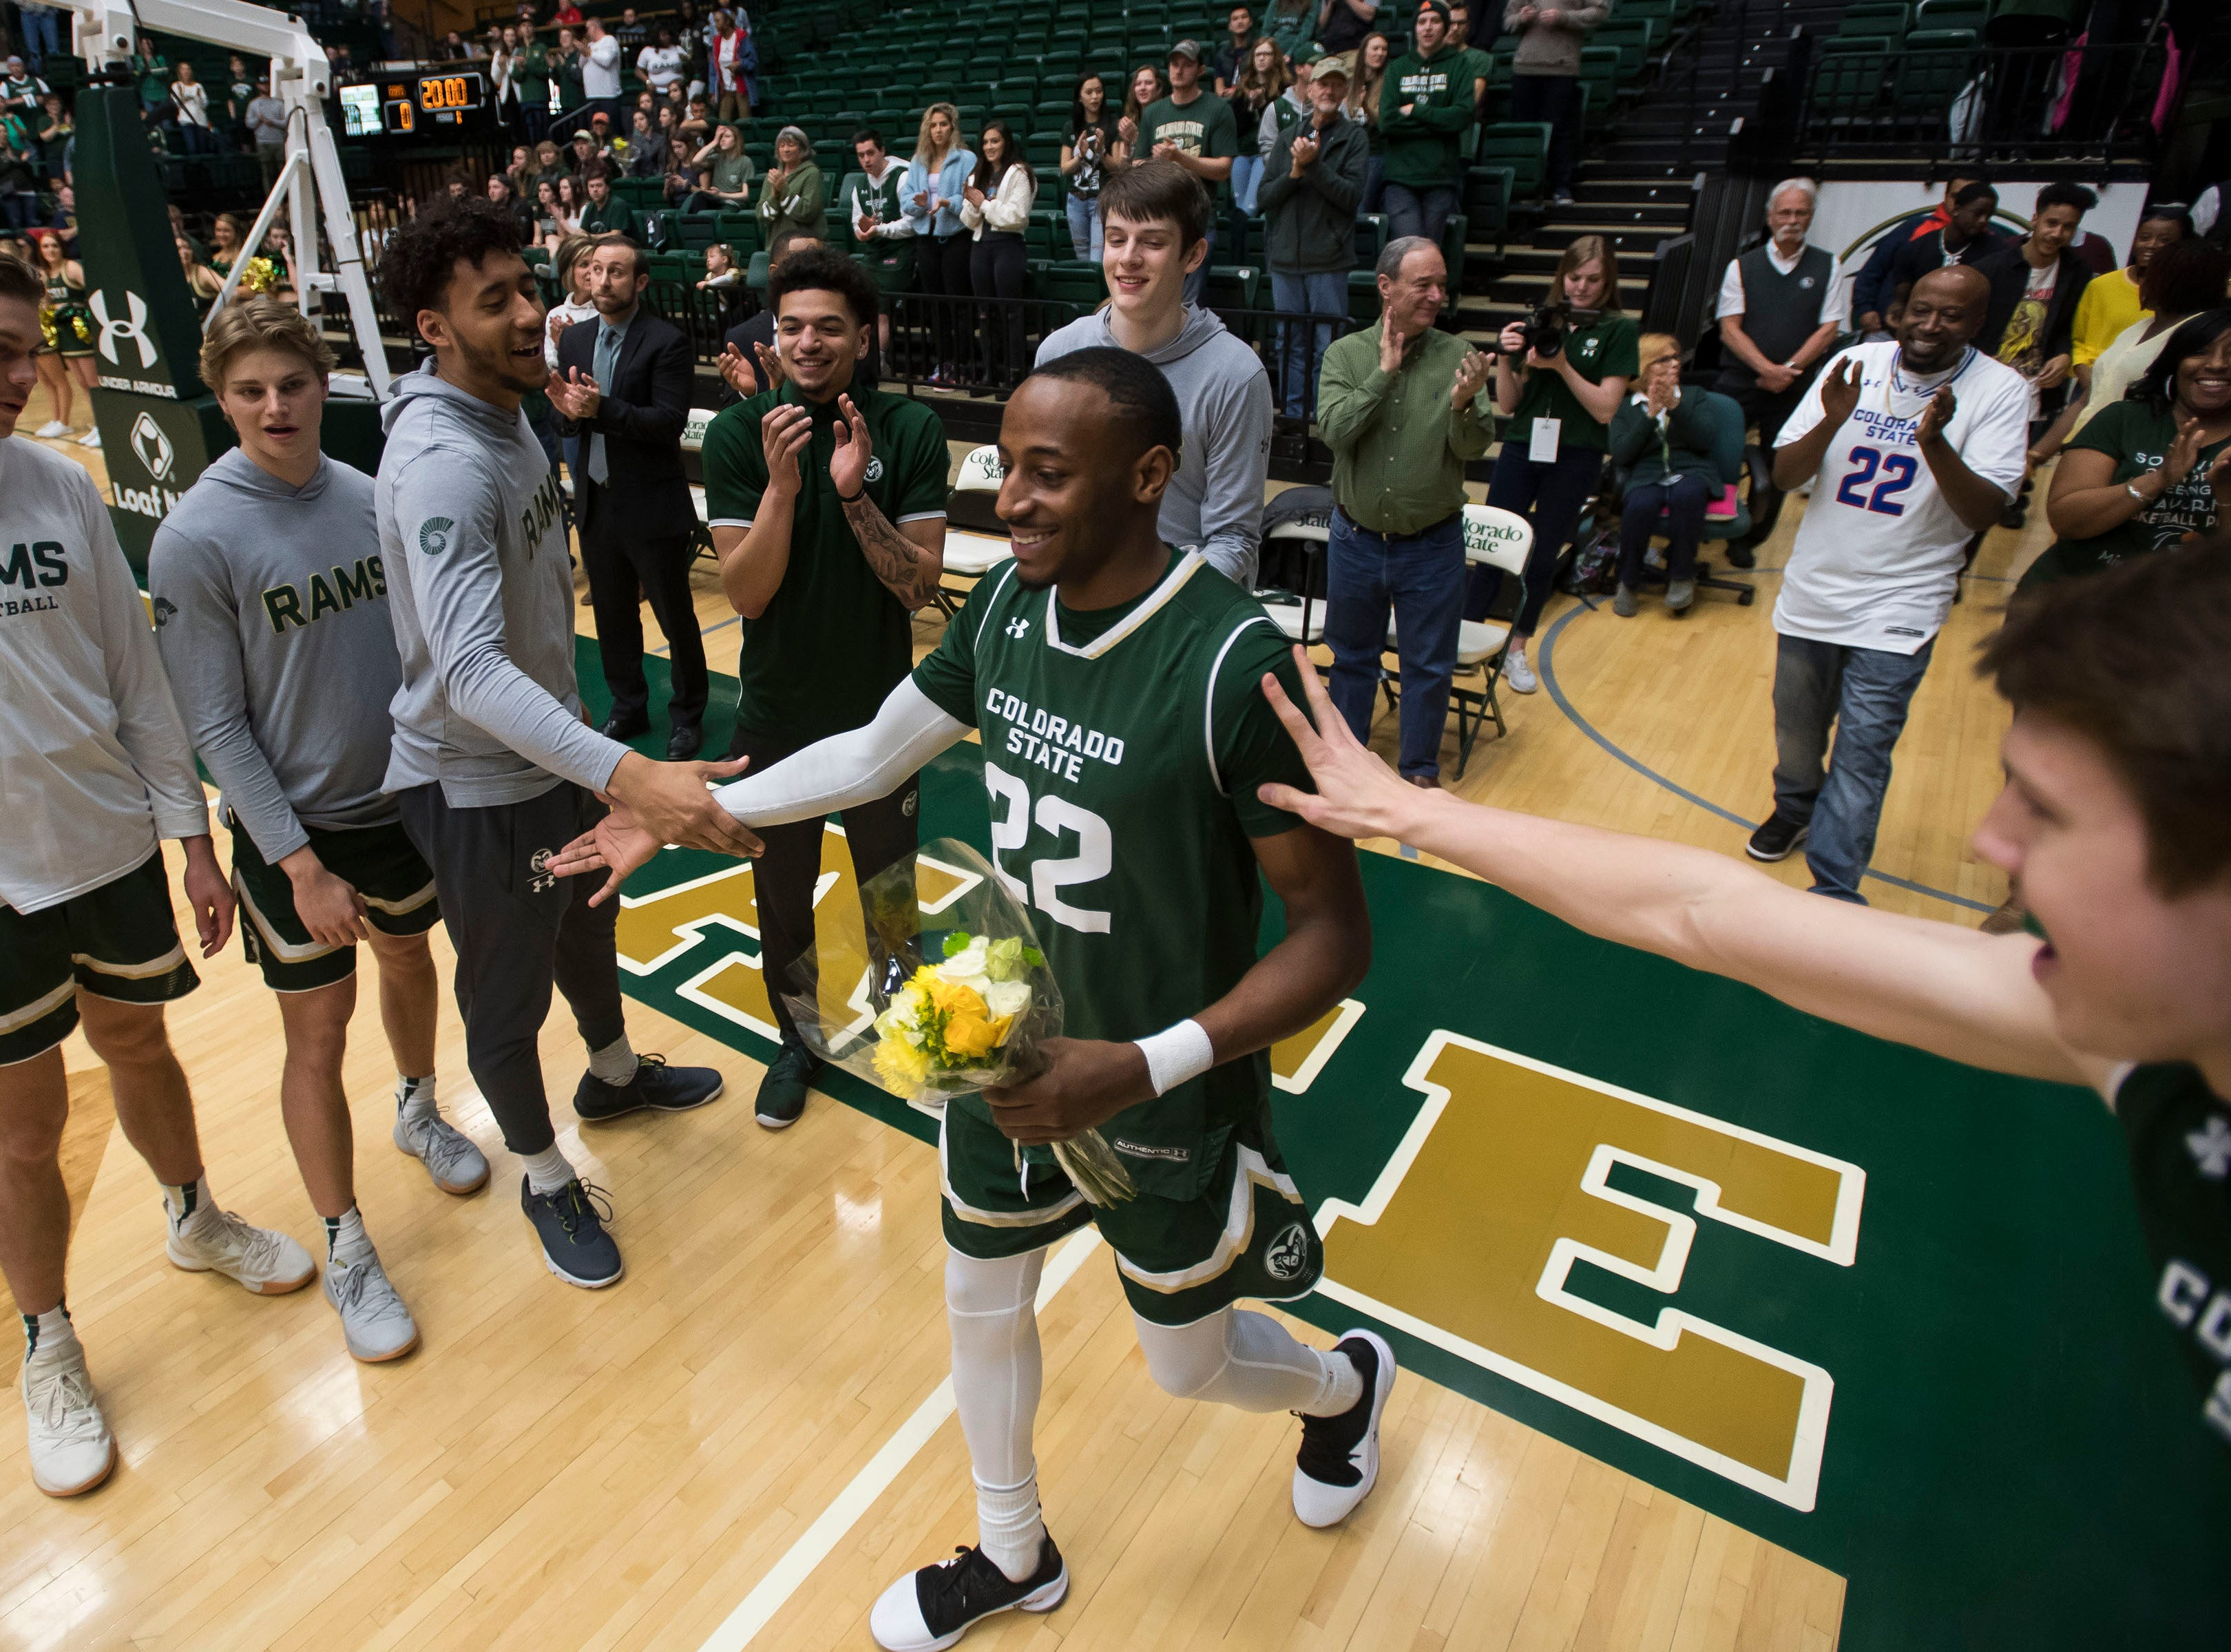 Colorado State University senior guard J.D. Paige (22) is honored before a game against University of Nevada, Las Vegas on Saturday, March 9, 2019, at Moby Arena in Fort Collins, Colo.